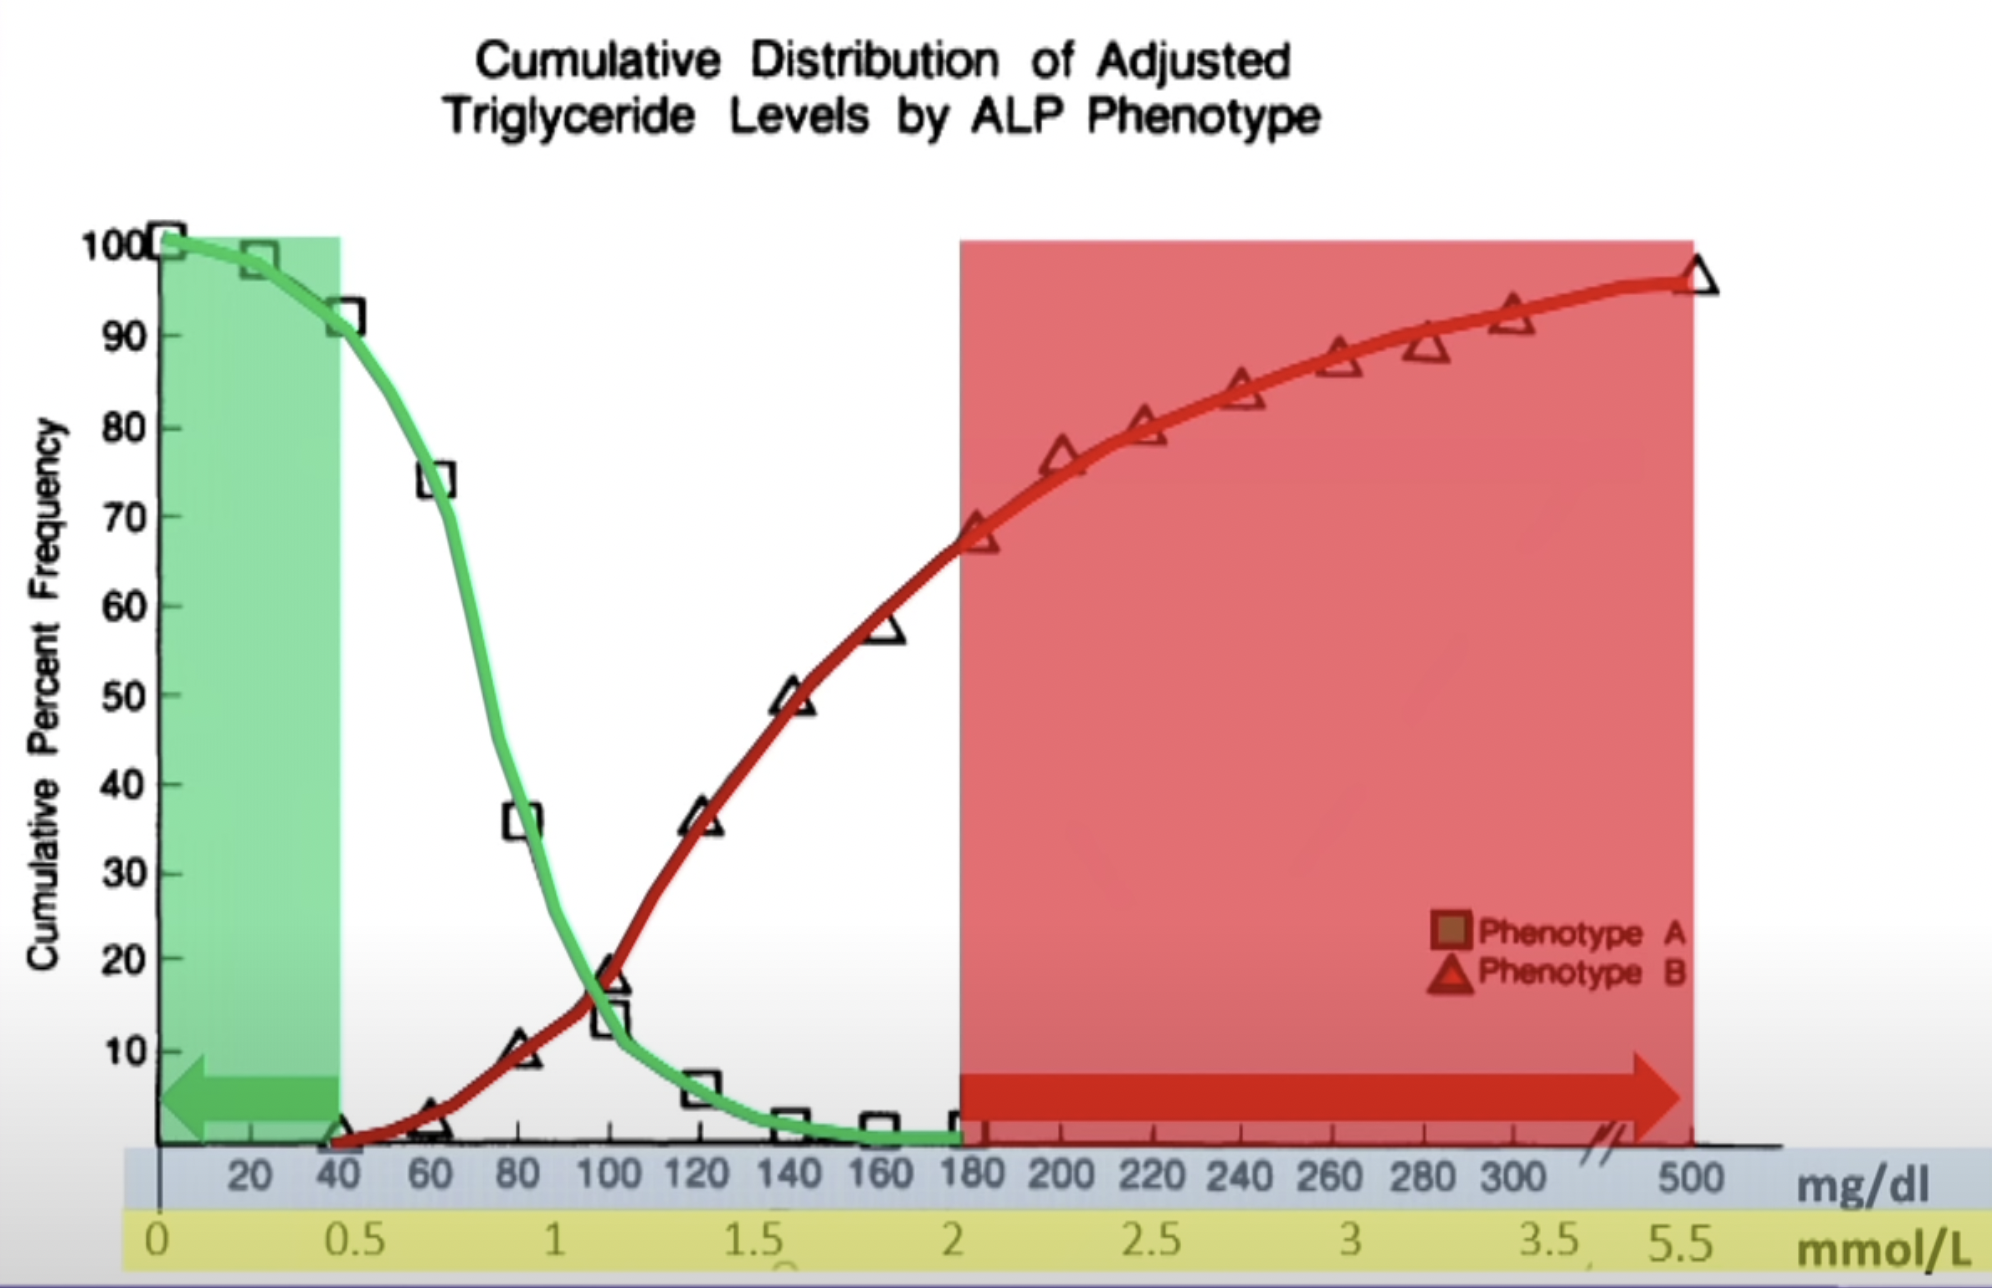 Cumulative Distribution of Adjusted Triglyceride Levels by ALP Phenotype. Austin, M.A., King, M.C., Vranizan, K.M., & Krauss, R. M. (1990). Atherogenic lipoprotein phenotype. A proposed genetic marker for coronary heart disease risk. Circulation, 82(2), 495-506.